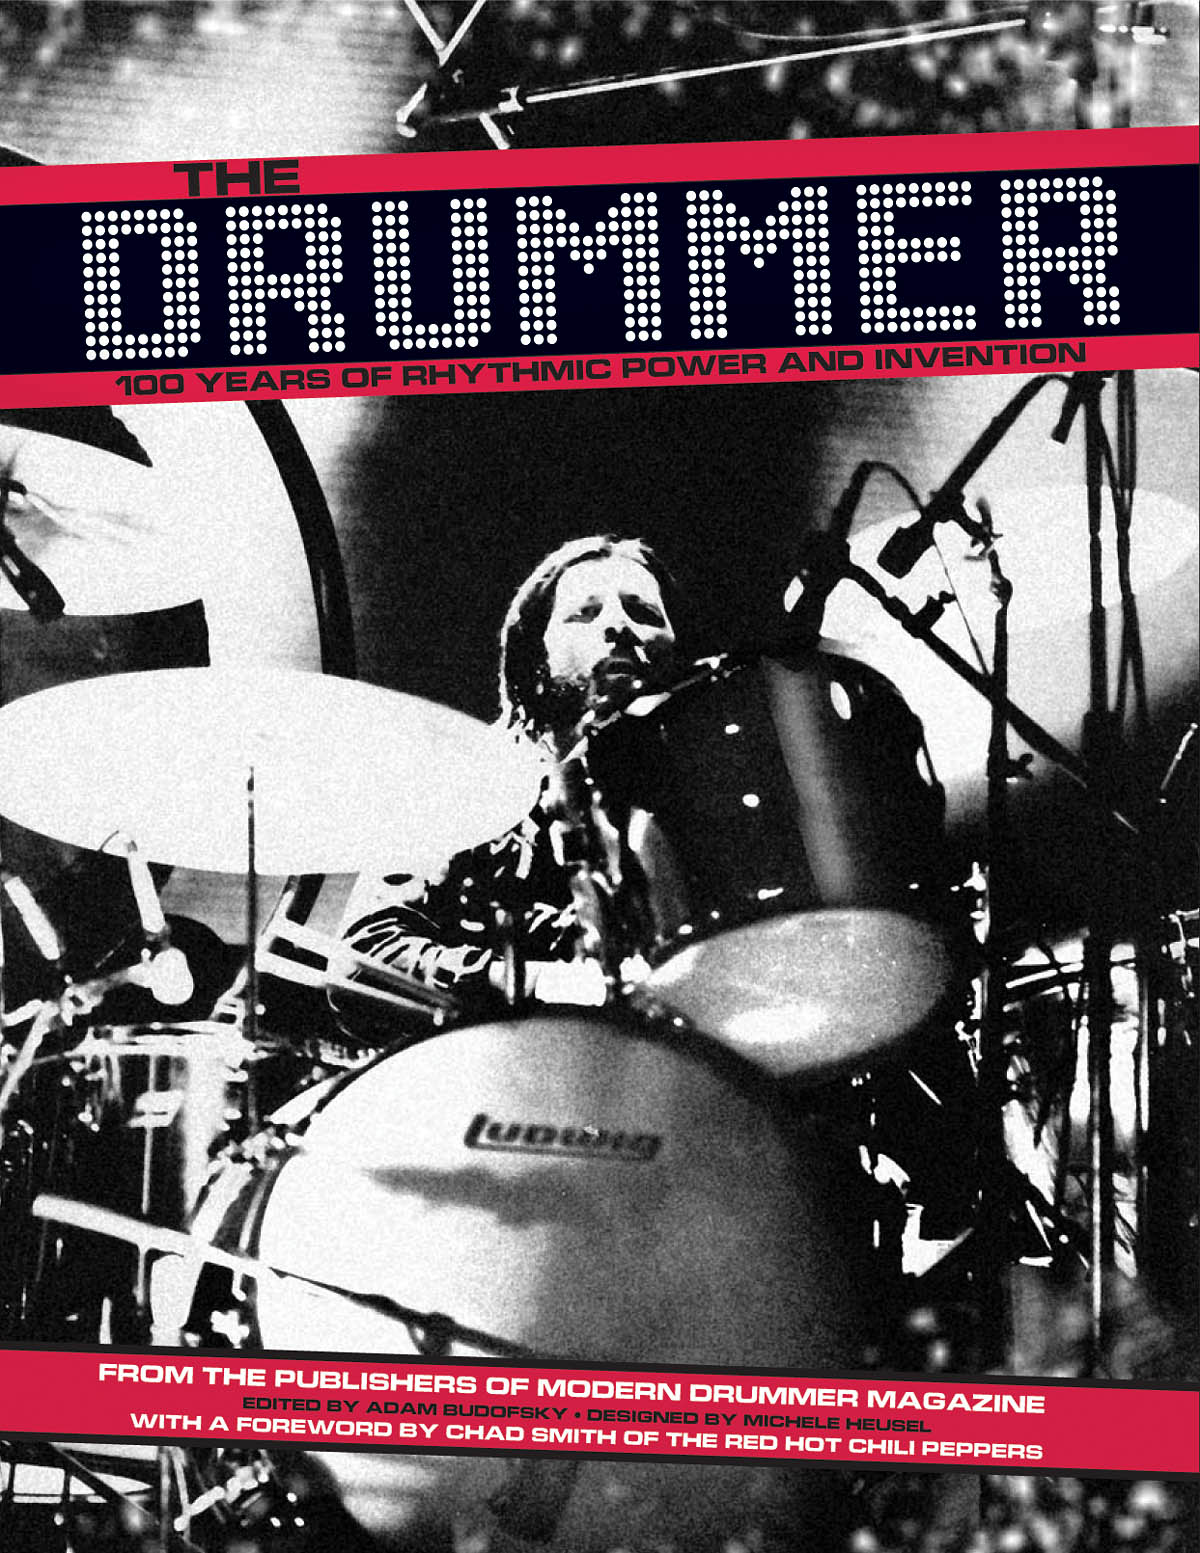 The Drummer: Reference Books: History